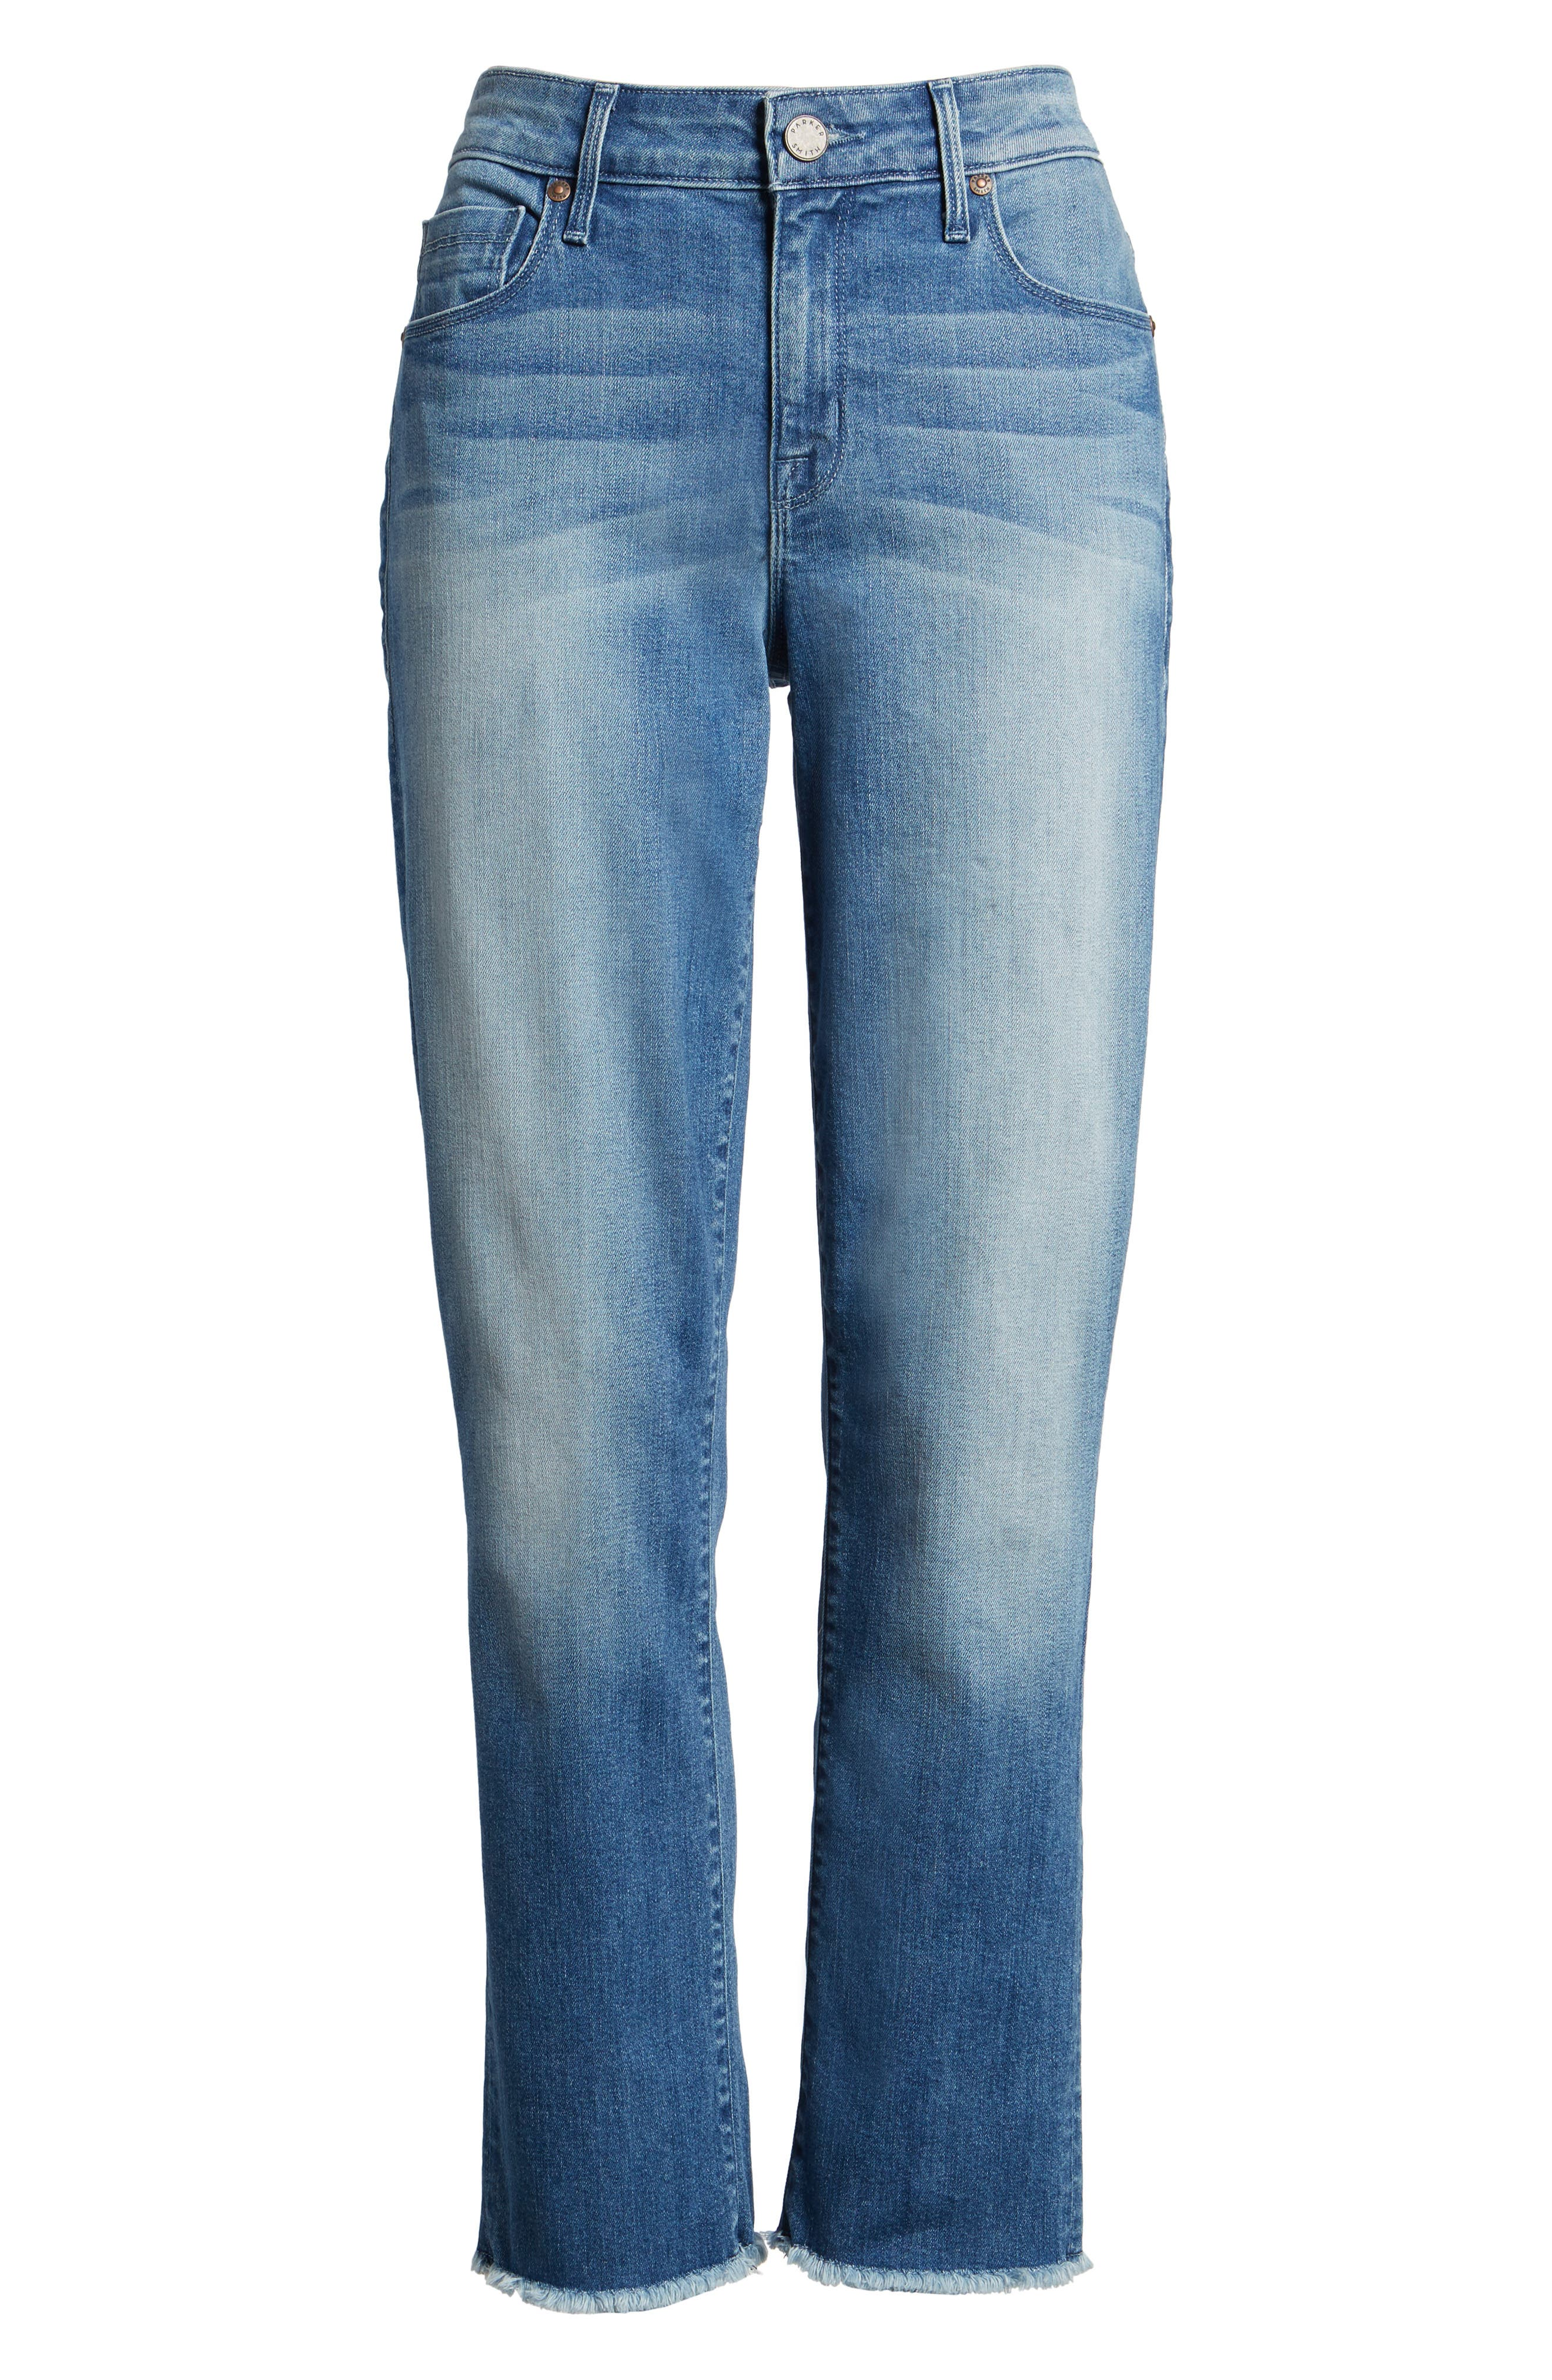 Raw Edge Ankle Straight Jeans,                             Alternate thumbnail 6, color,                             402